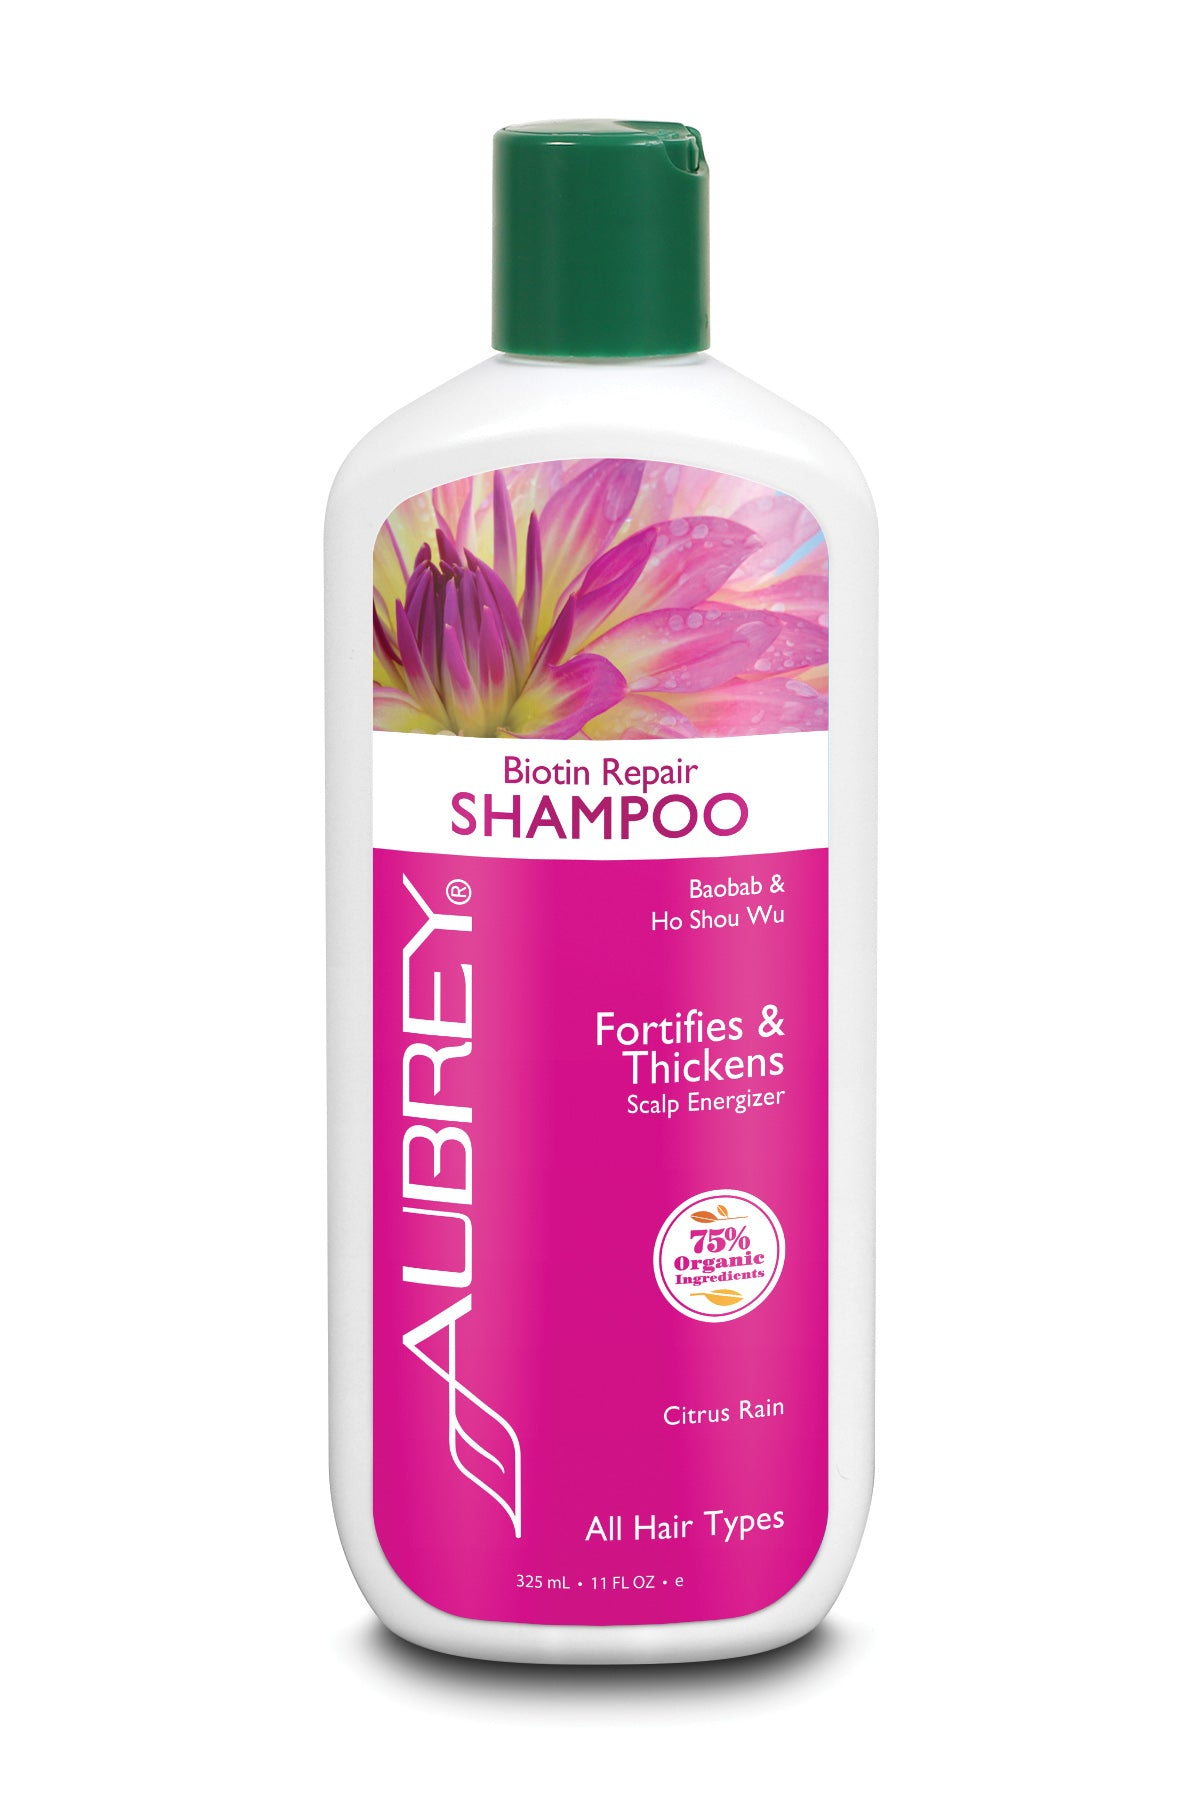 Biotin Repair Shampoo - 11oz